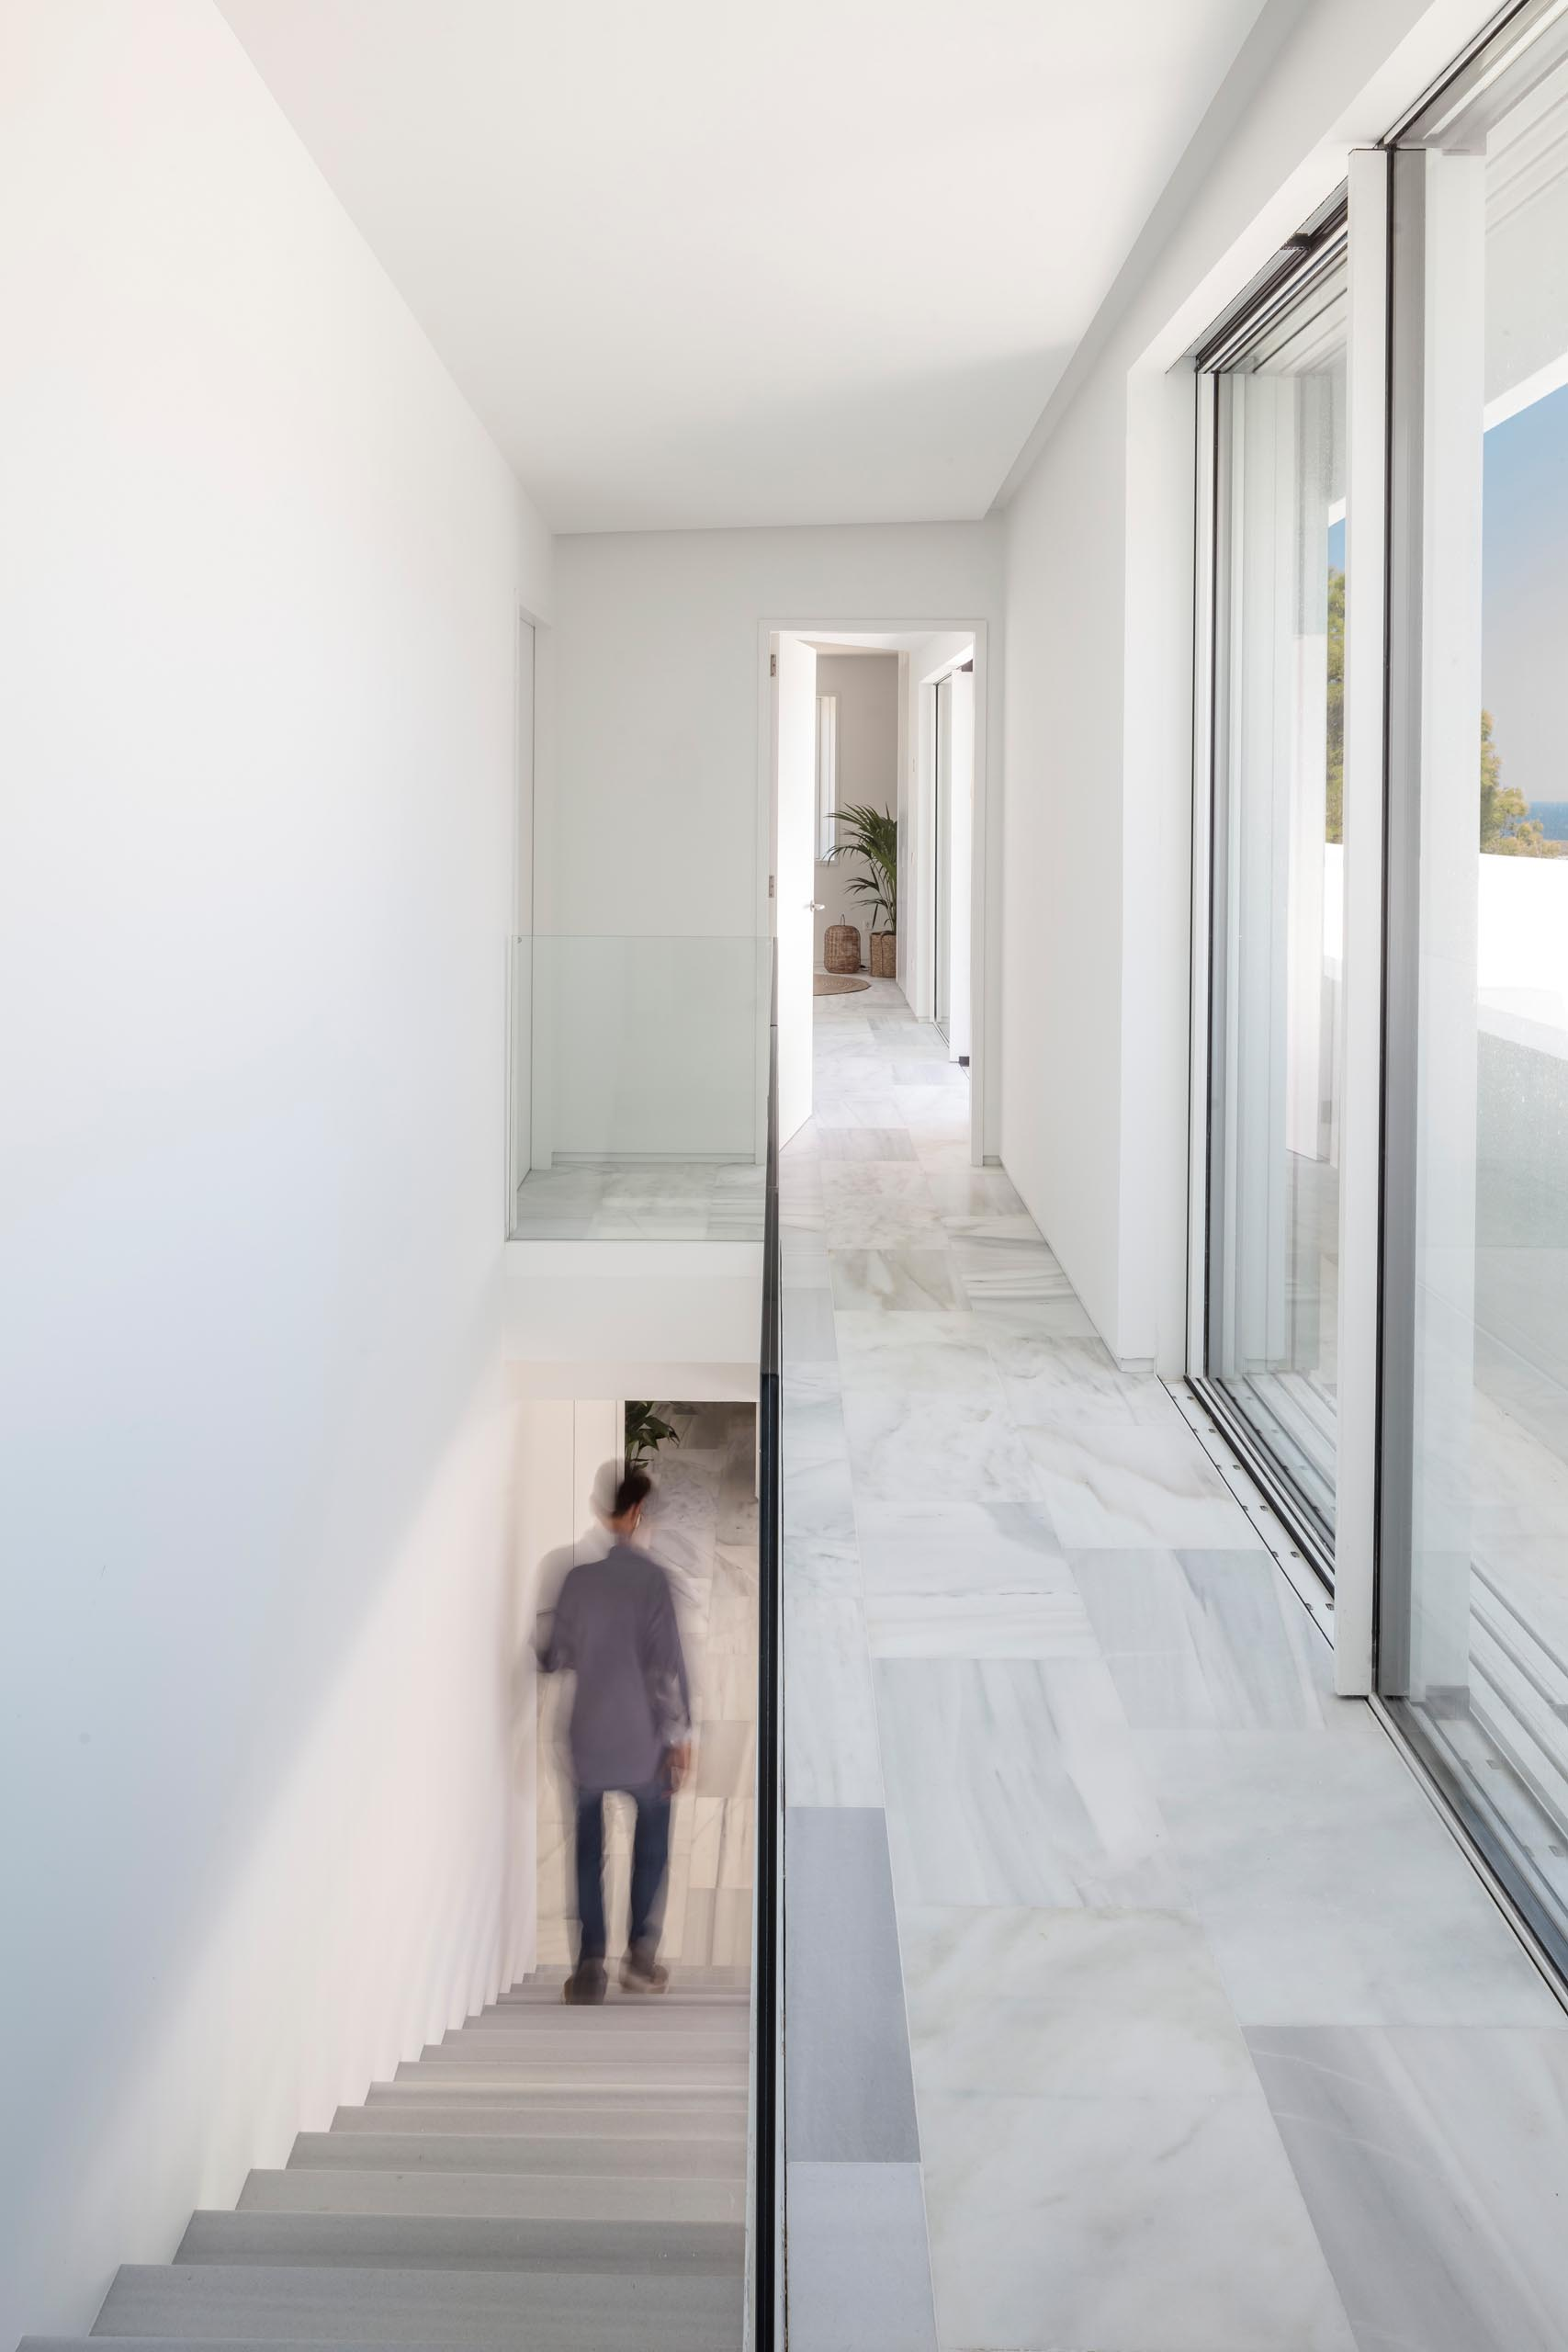 A modern house with an open hallway that overlooks the stairs.